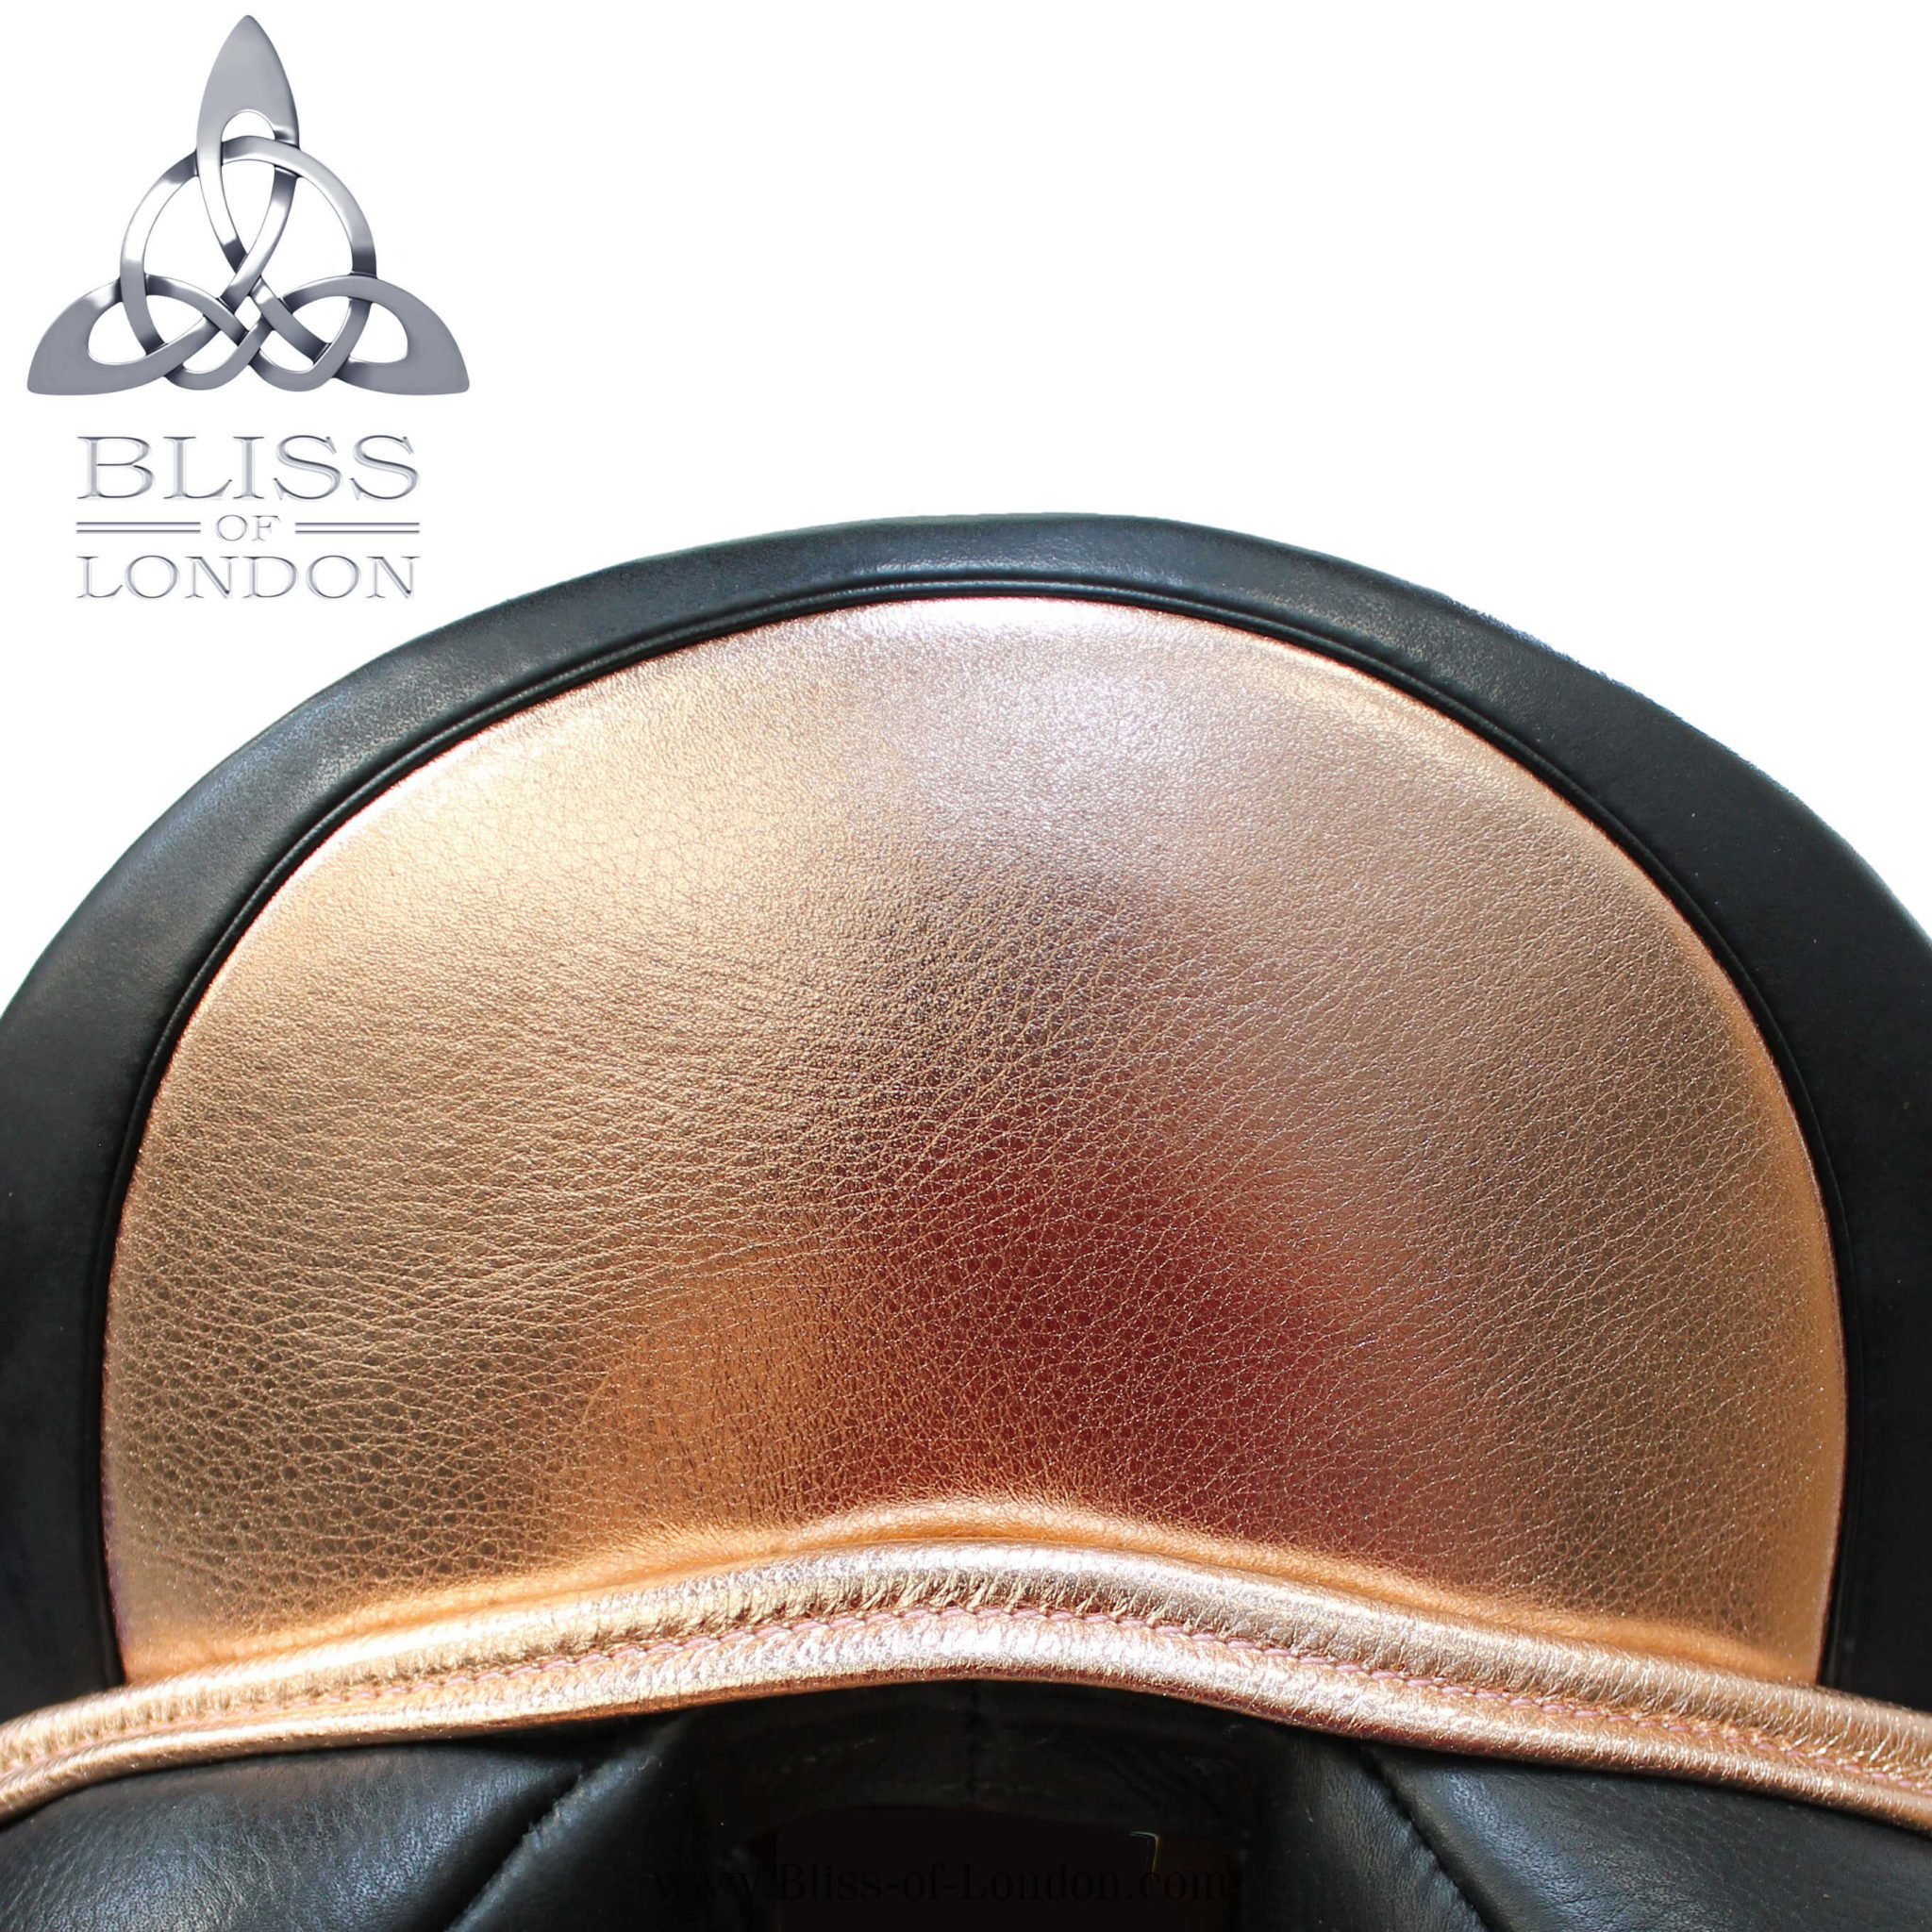 19325 - lox dr mono - rosegold centle